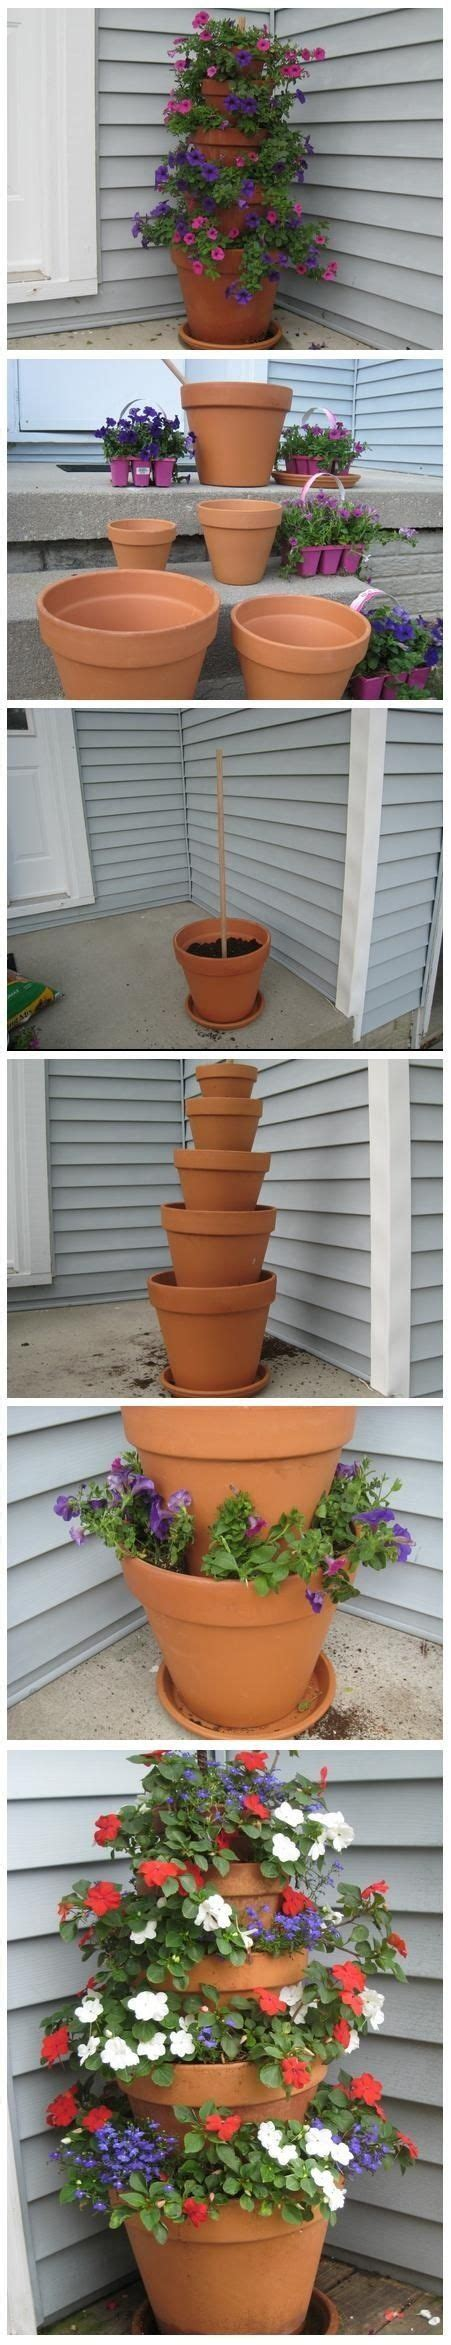 Terracotta Garden Decor Best 20 Flower Pot Tower Ideas On Pinterest Stacked Flower Pots Diy Yard Decor And Garden Crafts